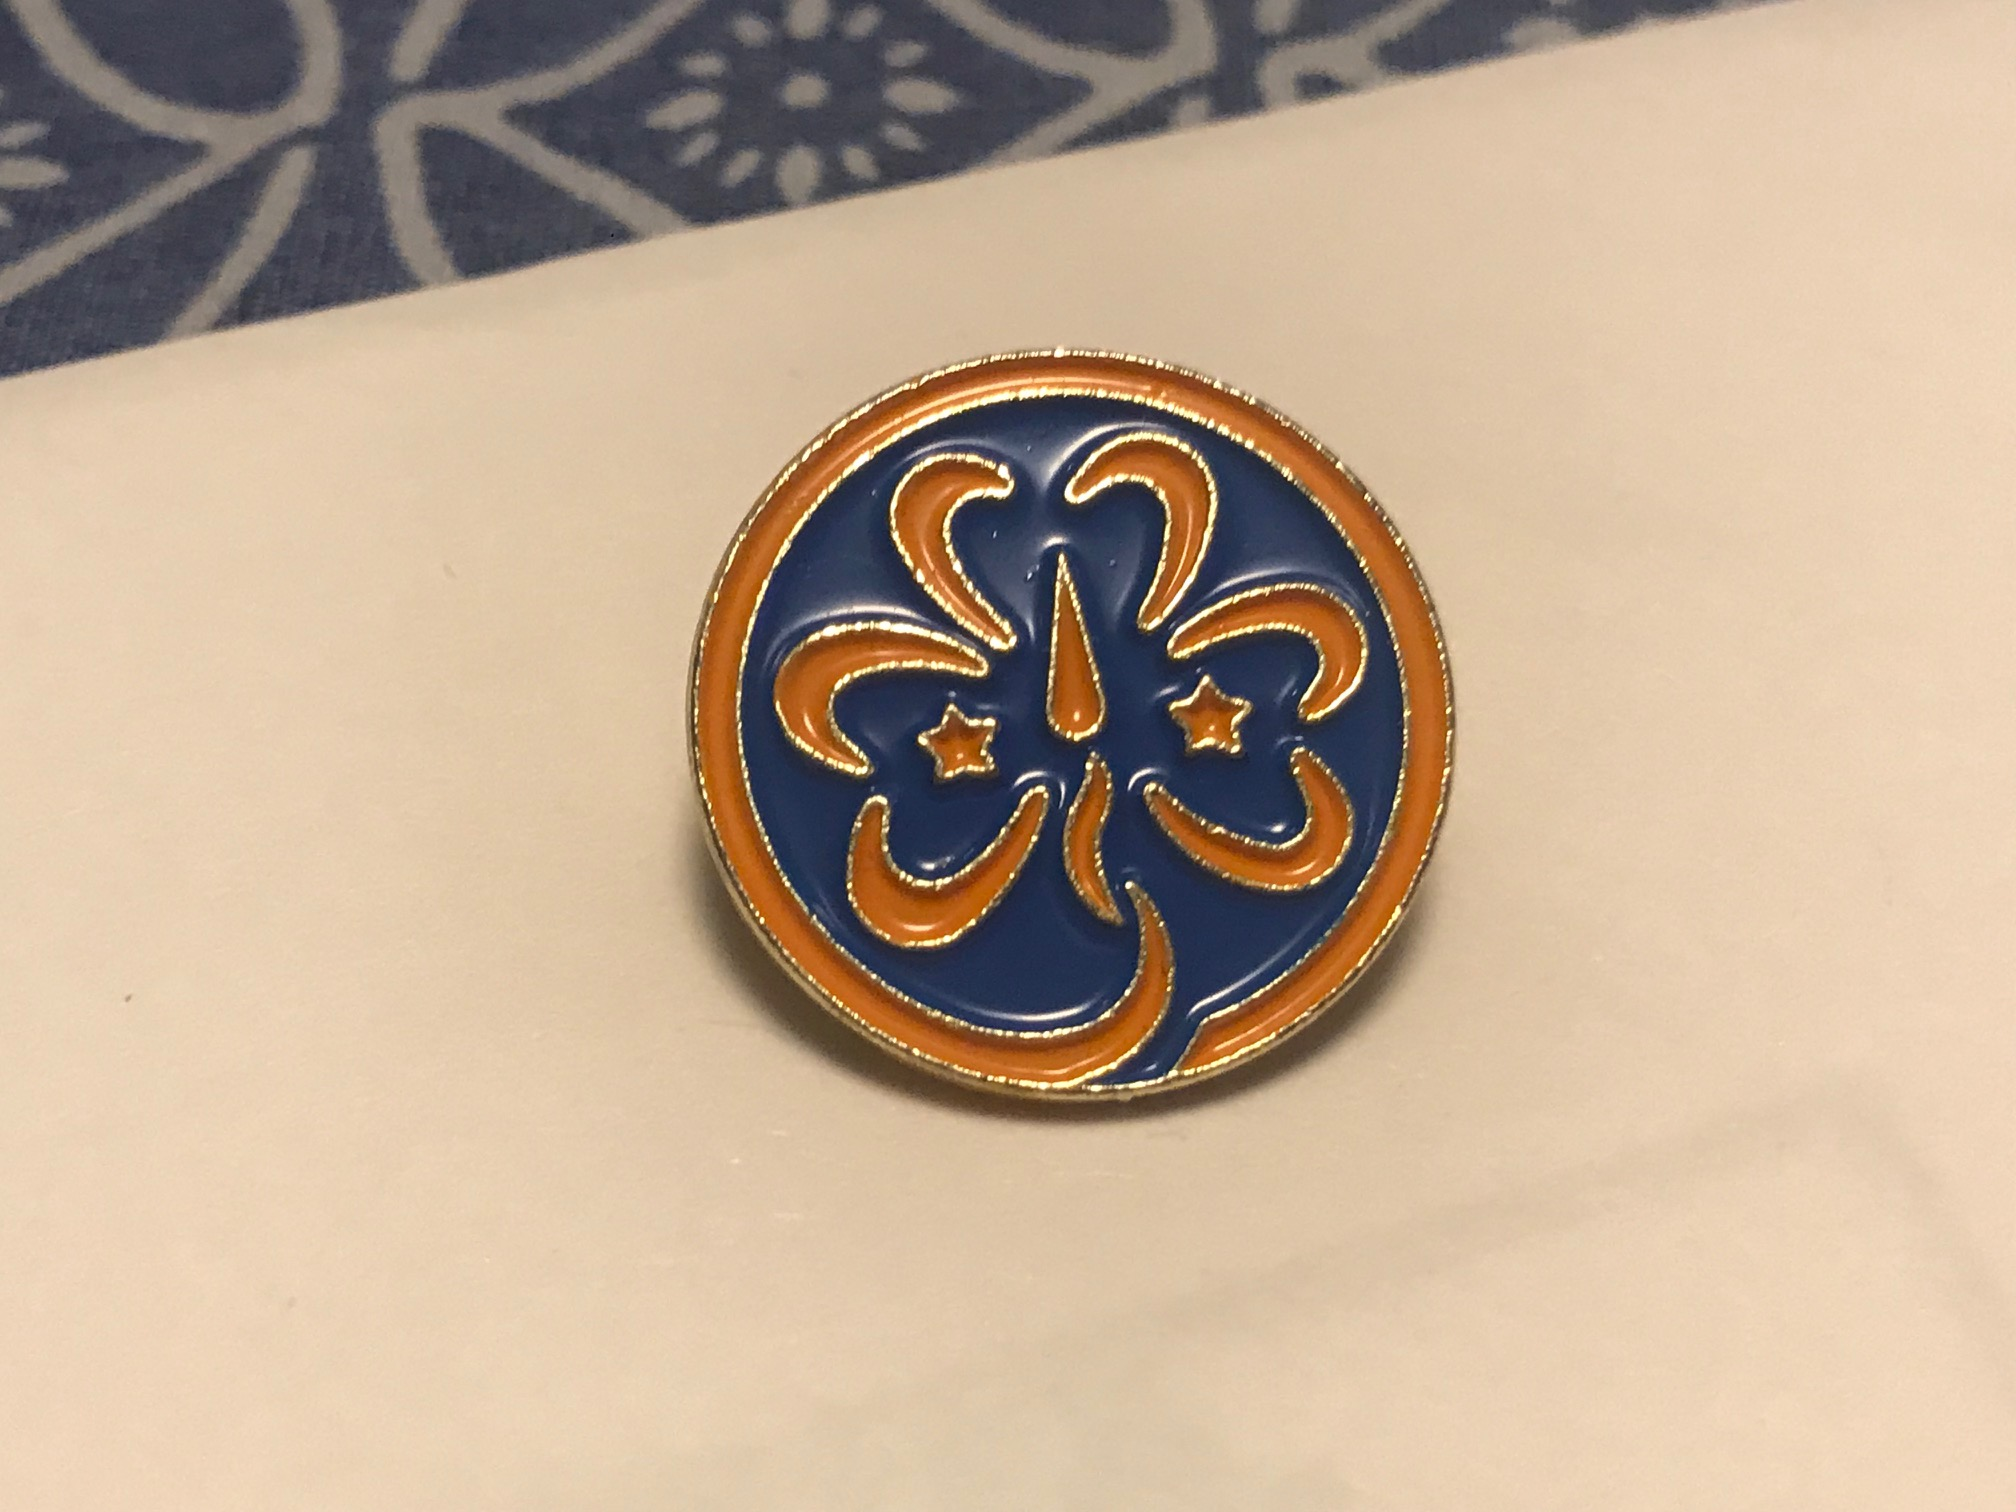 Older Official Girlscout Badge / Pin: 39,000+/- 1,000 ppm Lead. 90 ppm is unsafe for kids.